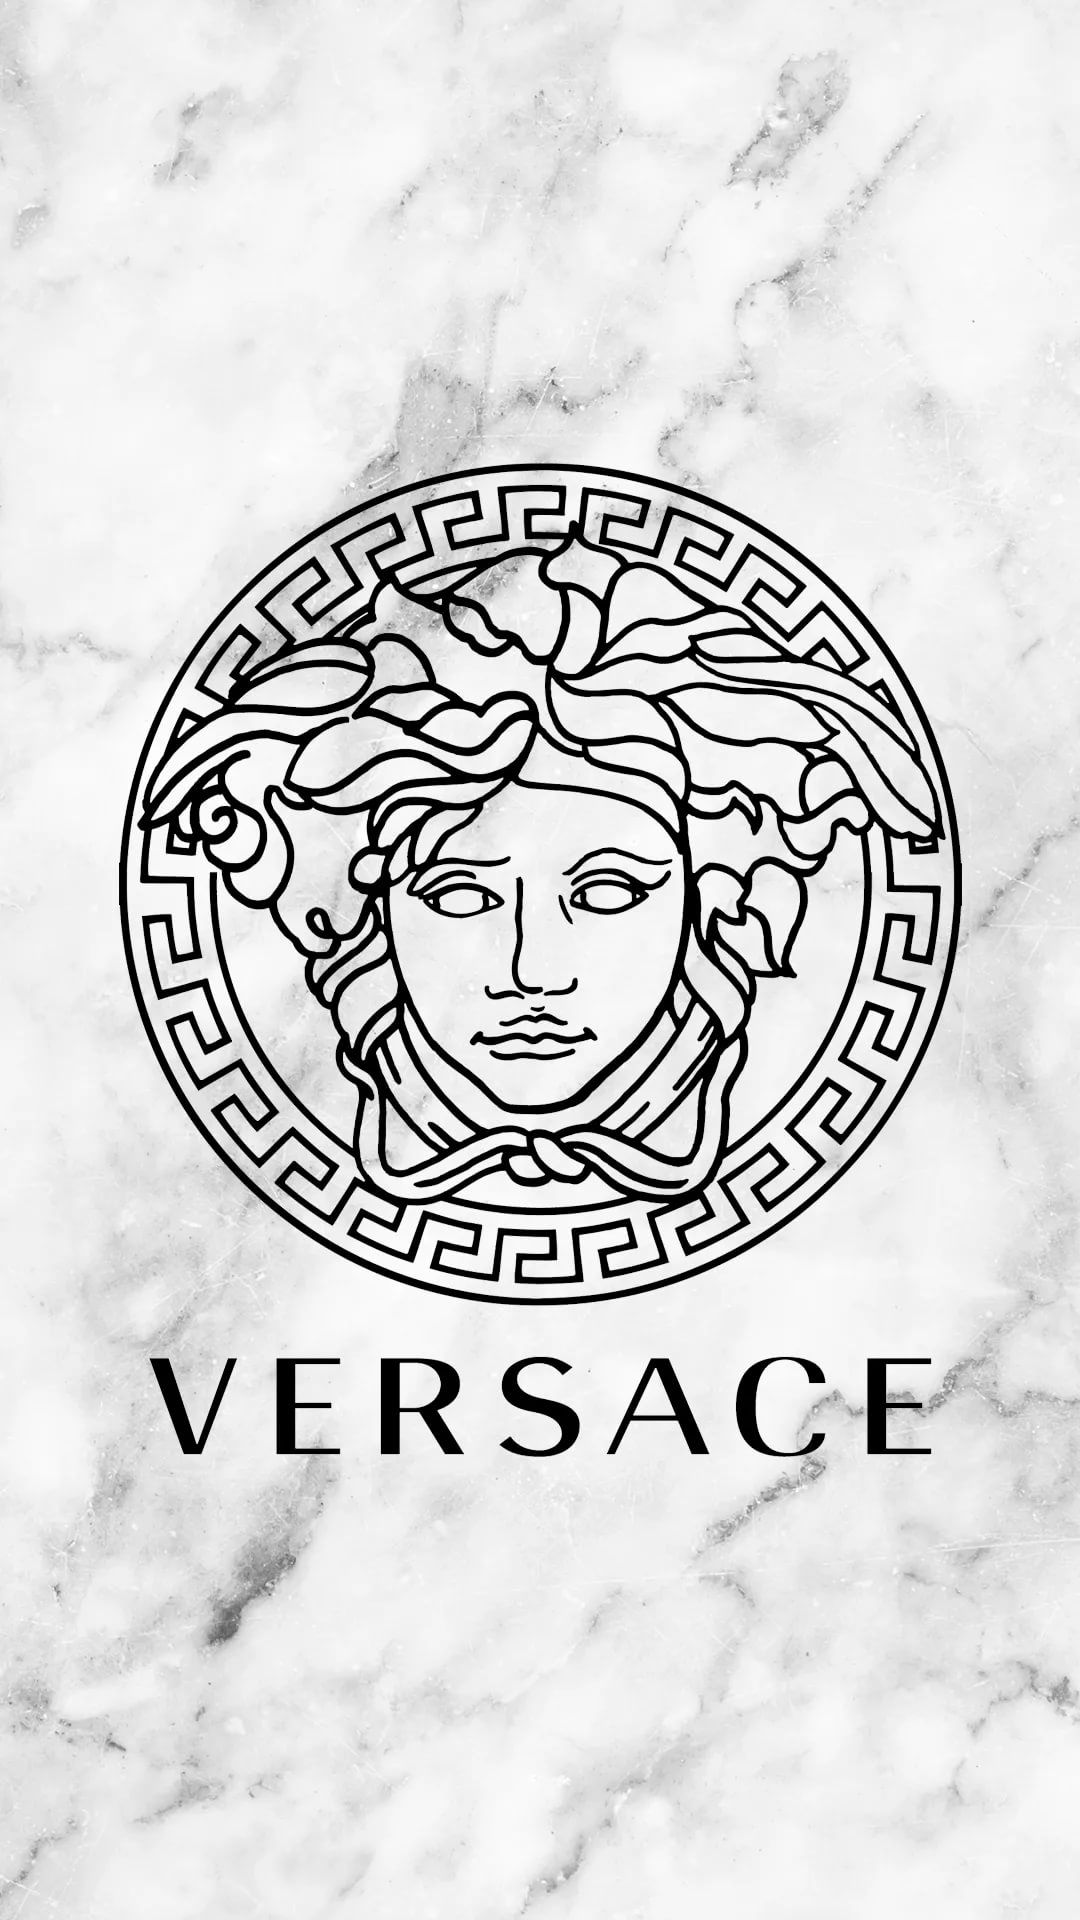 Versace Iphone Wallpapers 20 Images Wallpaperboat